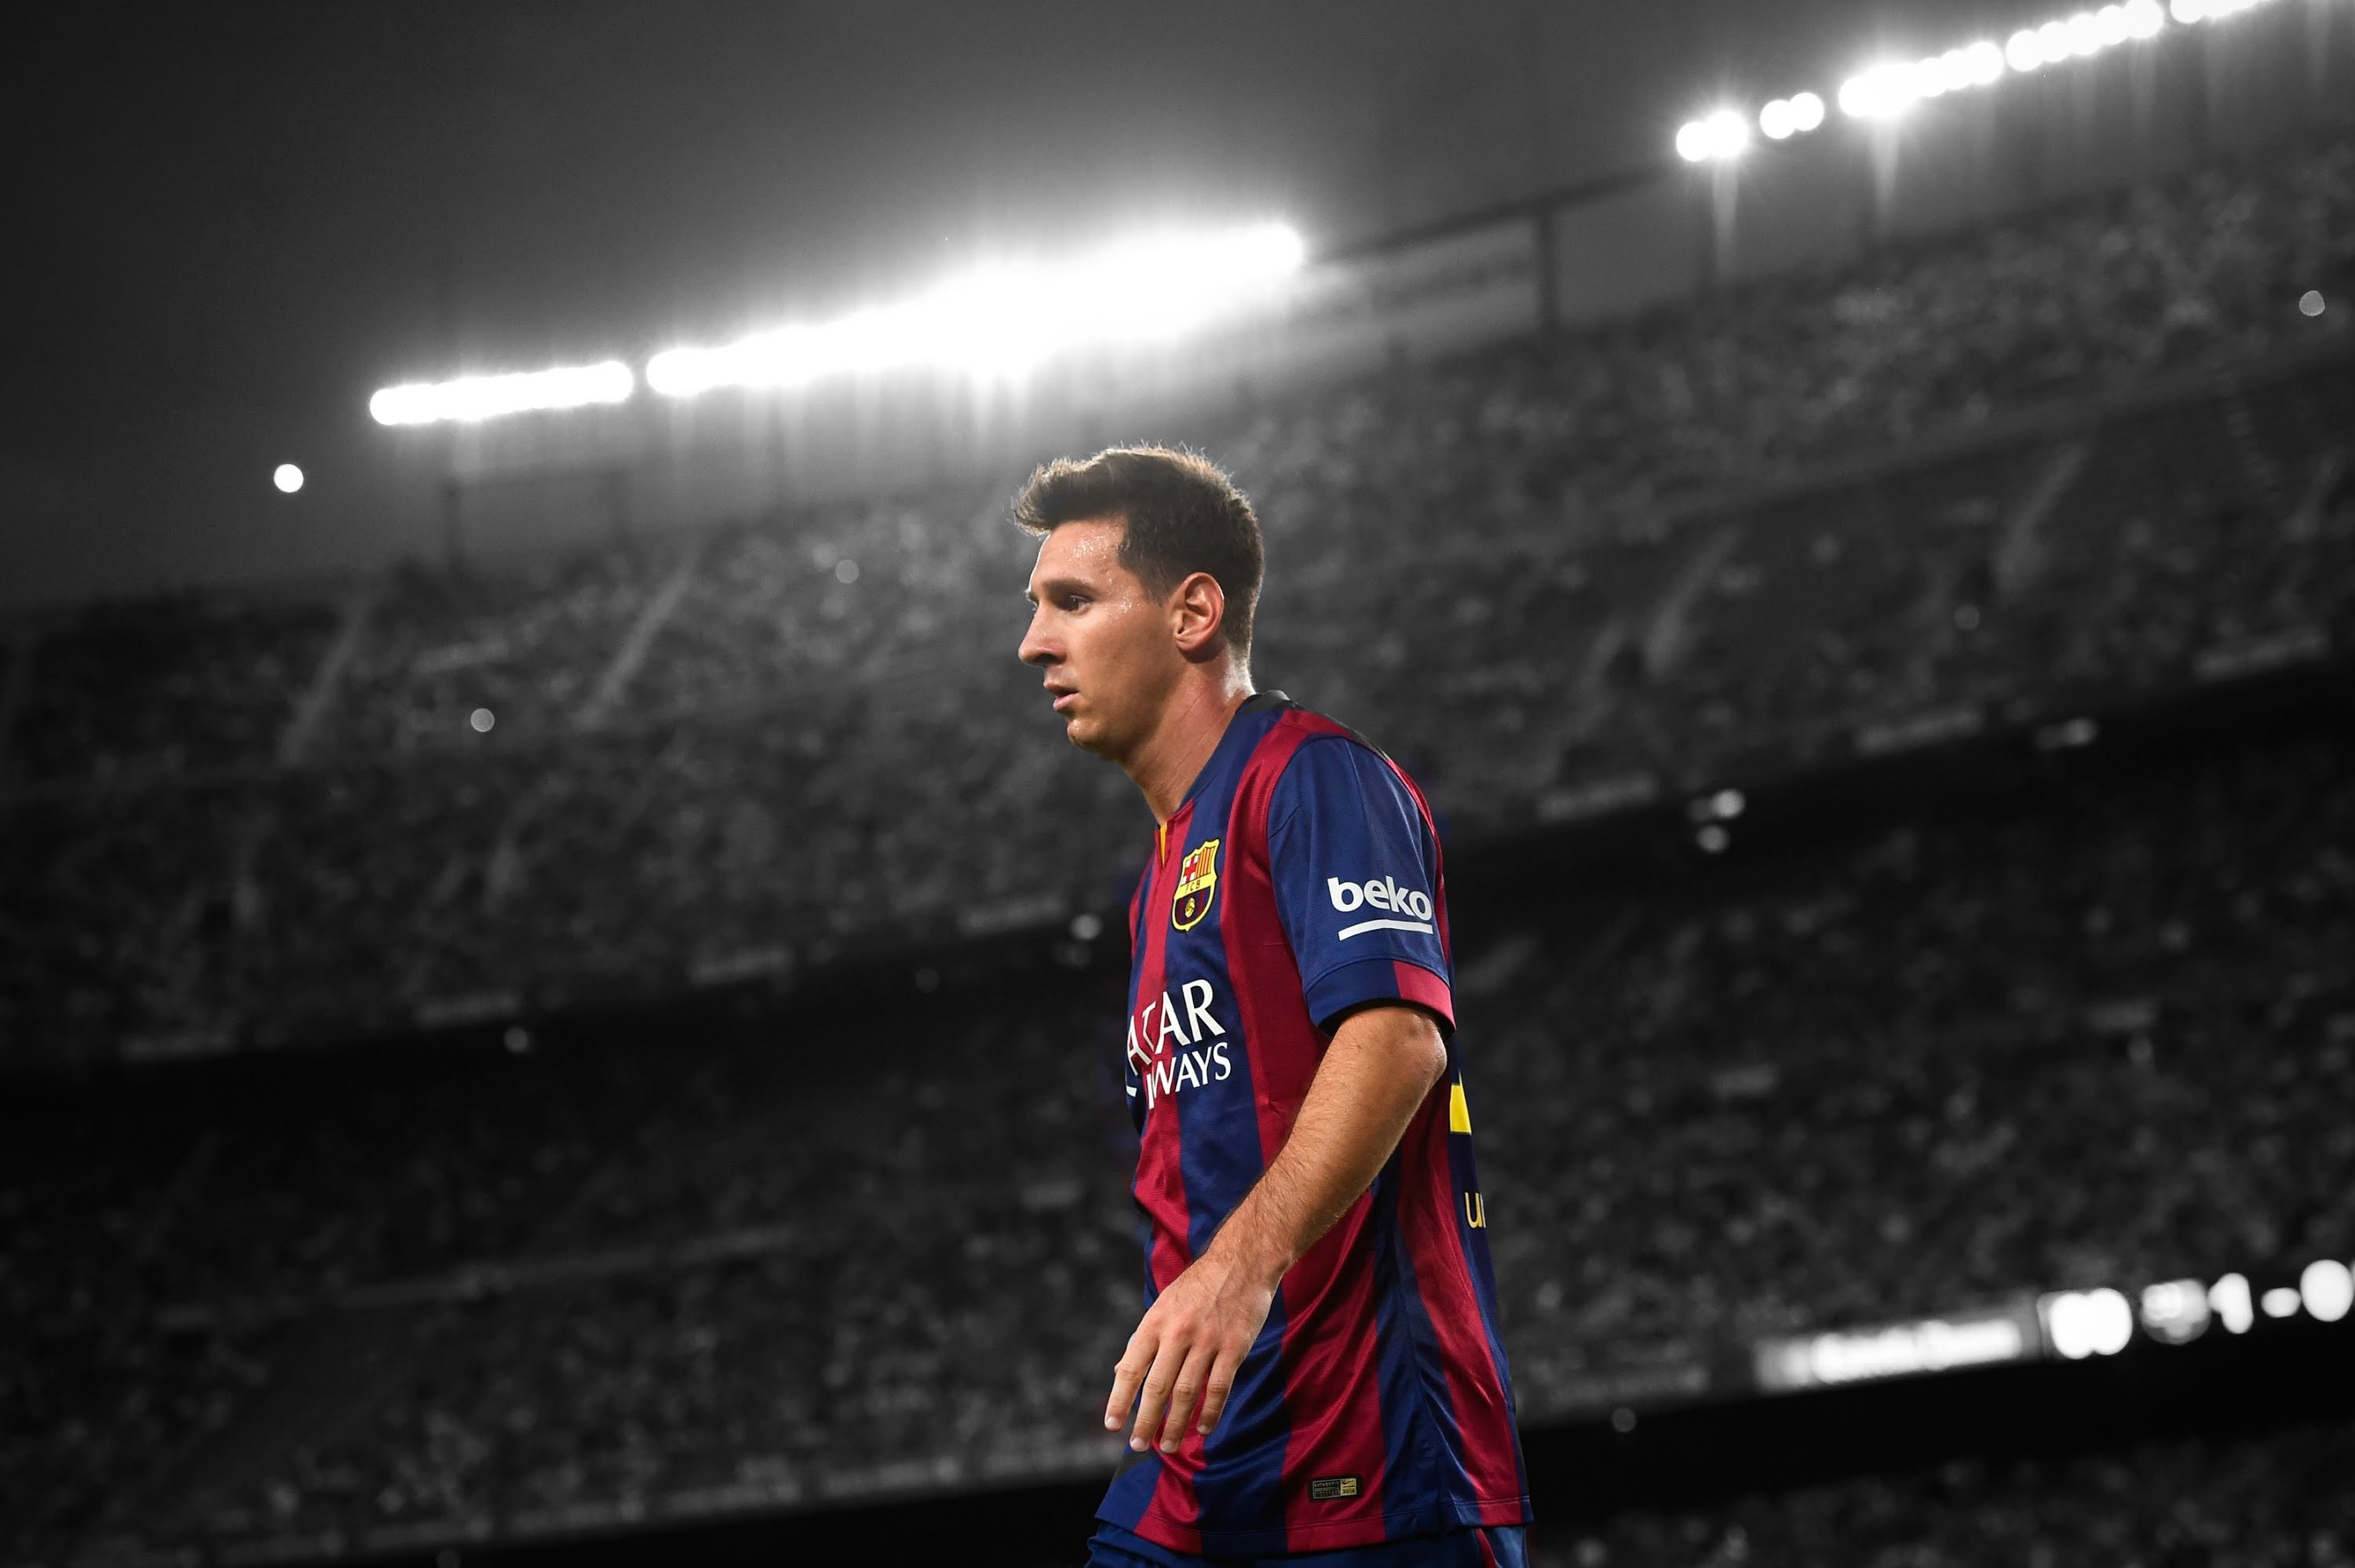 Lionel Messi Wallpapers HD download 3000x1998